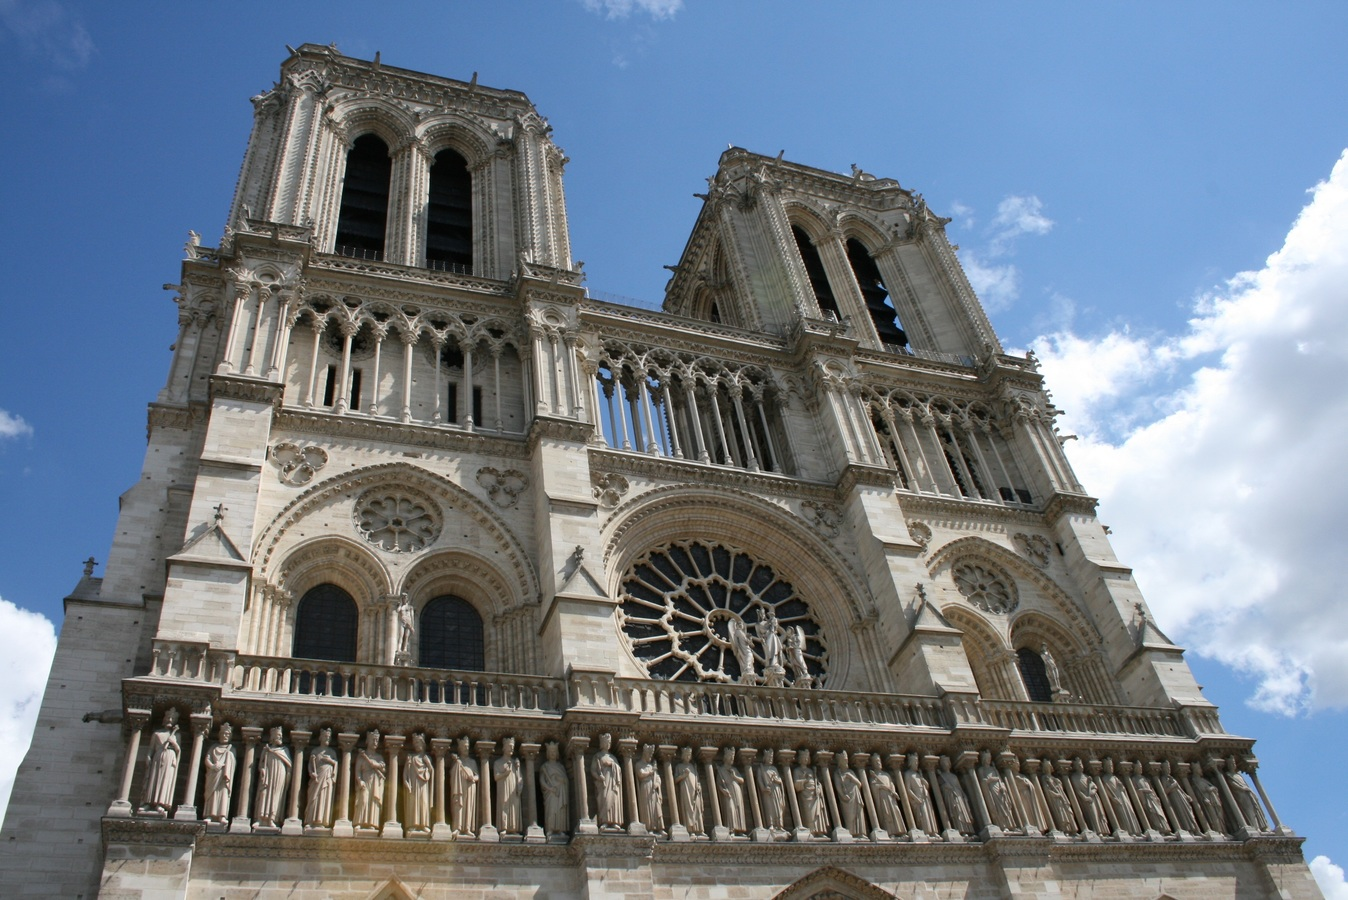 historical sites in Paris - Notre Dame Paris - CC0 / Public Domain